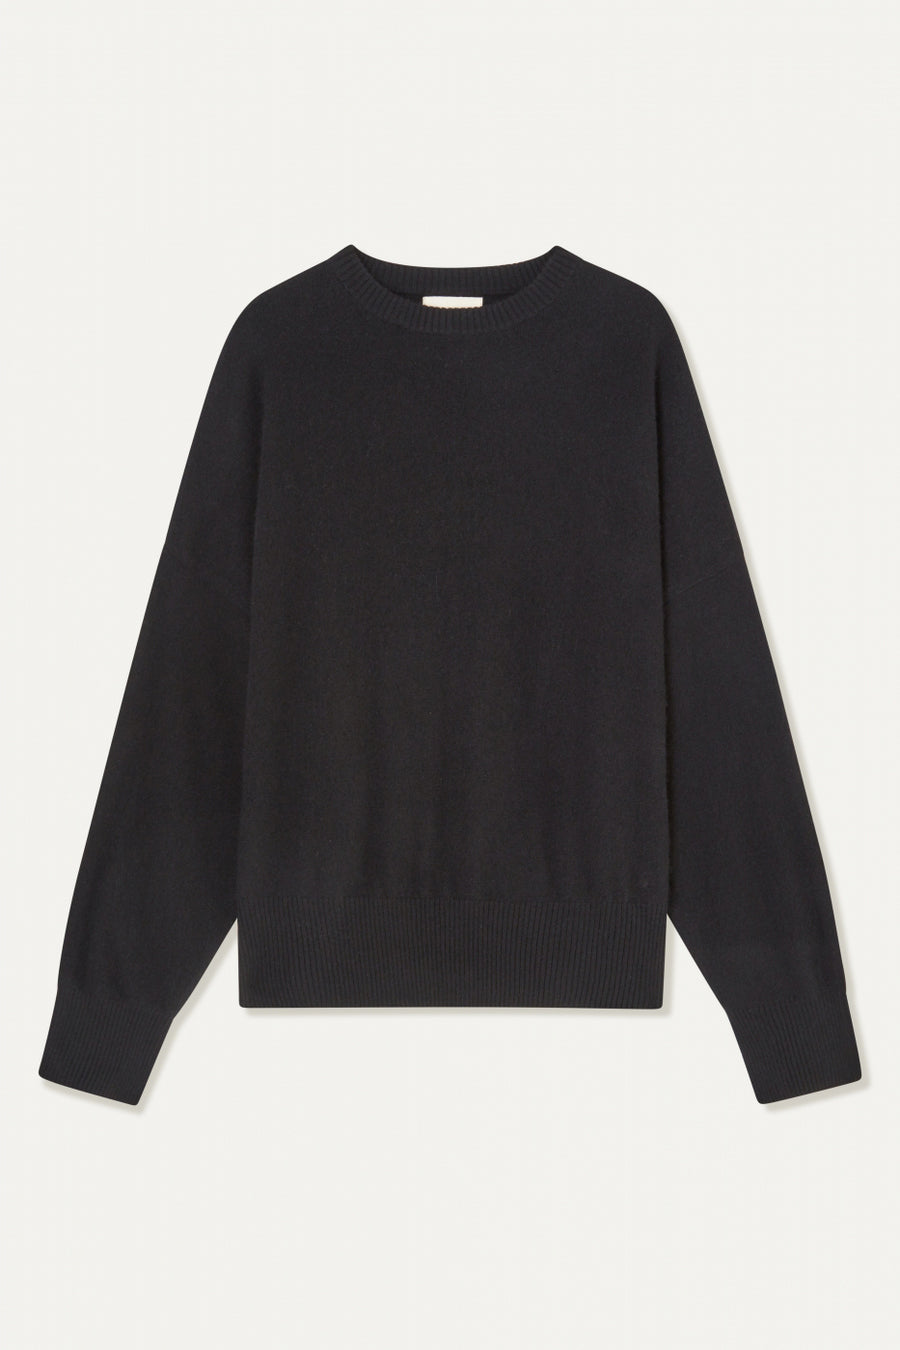 Anaa Sweater - Black